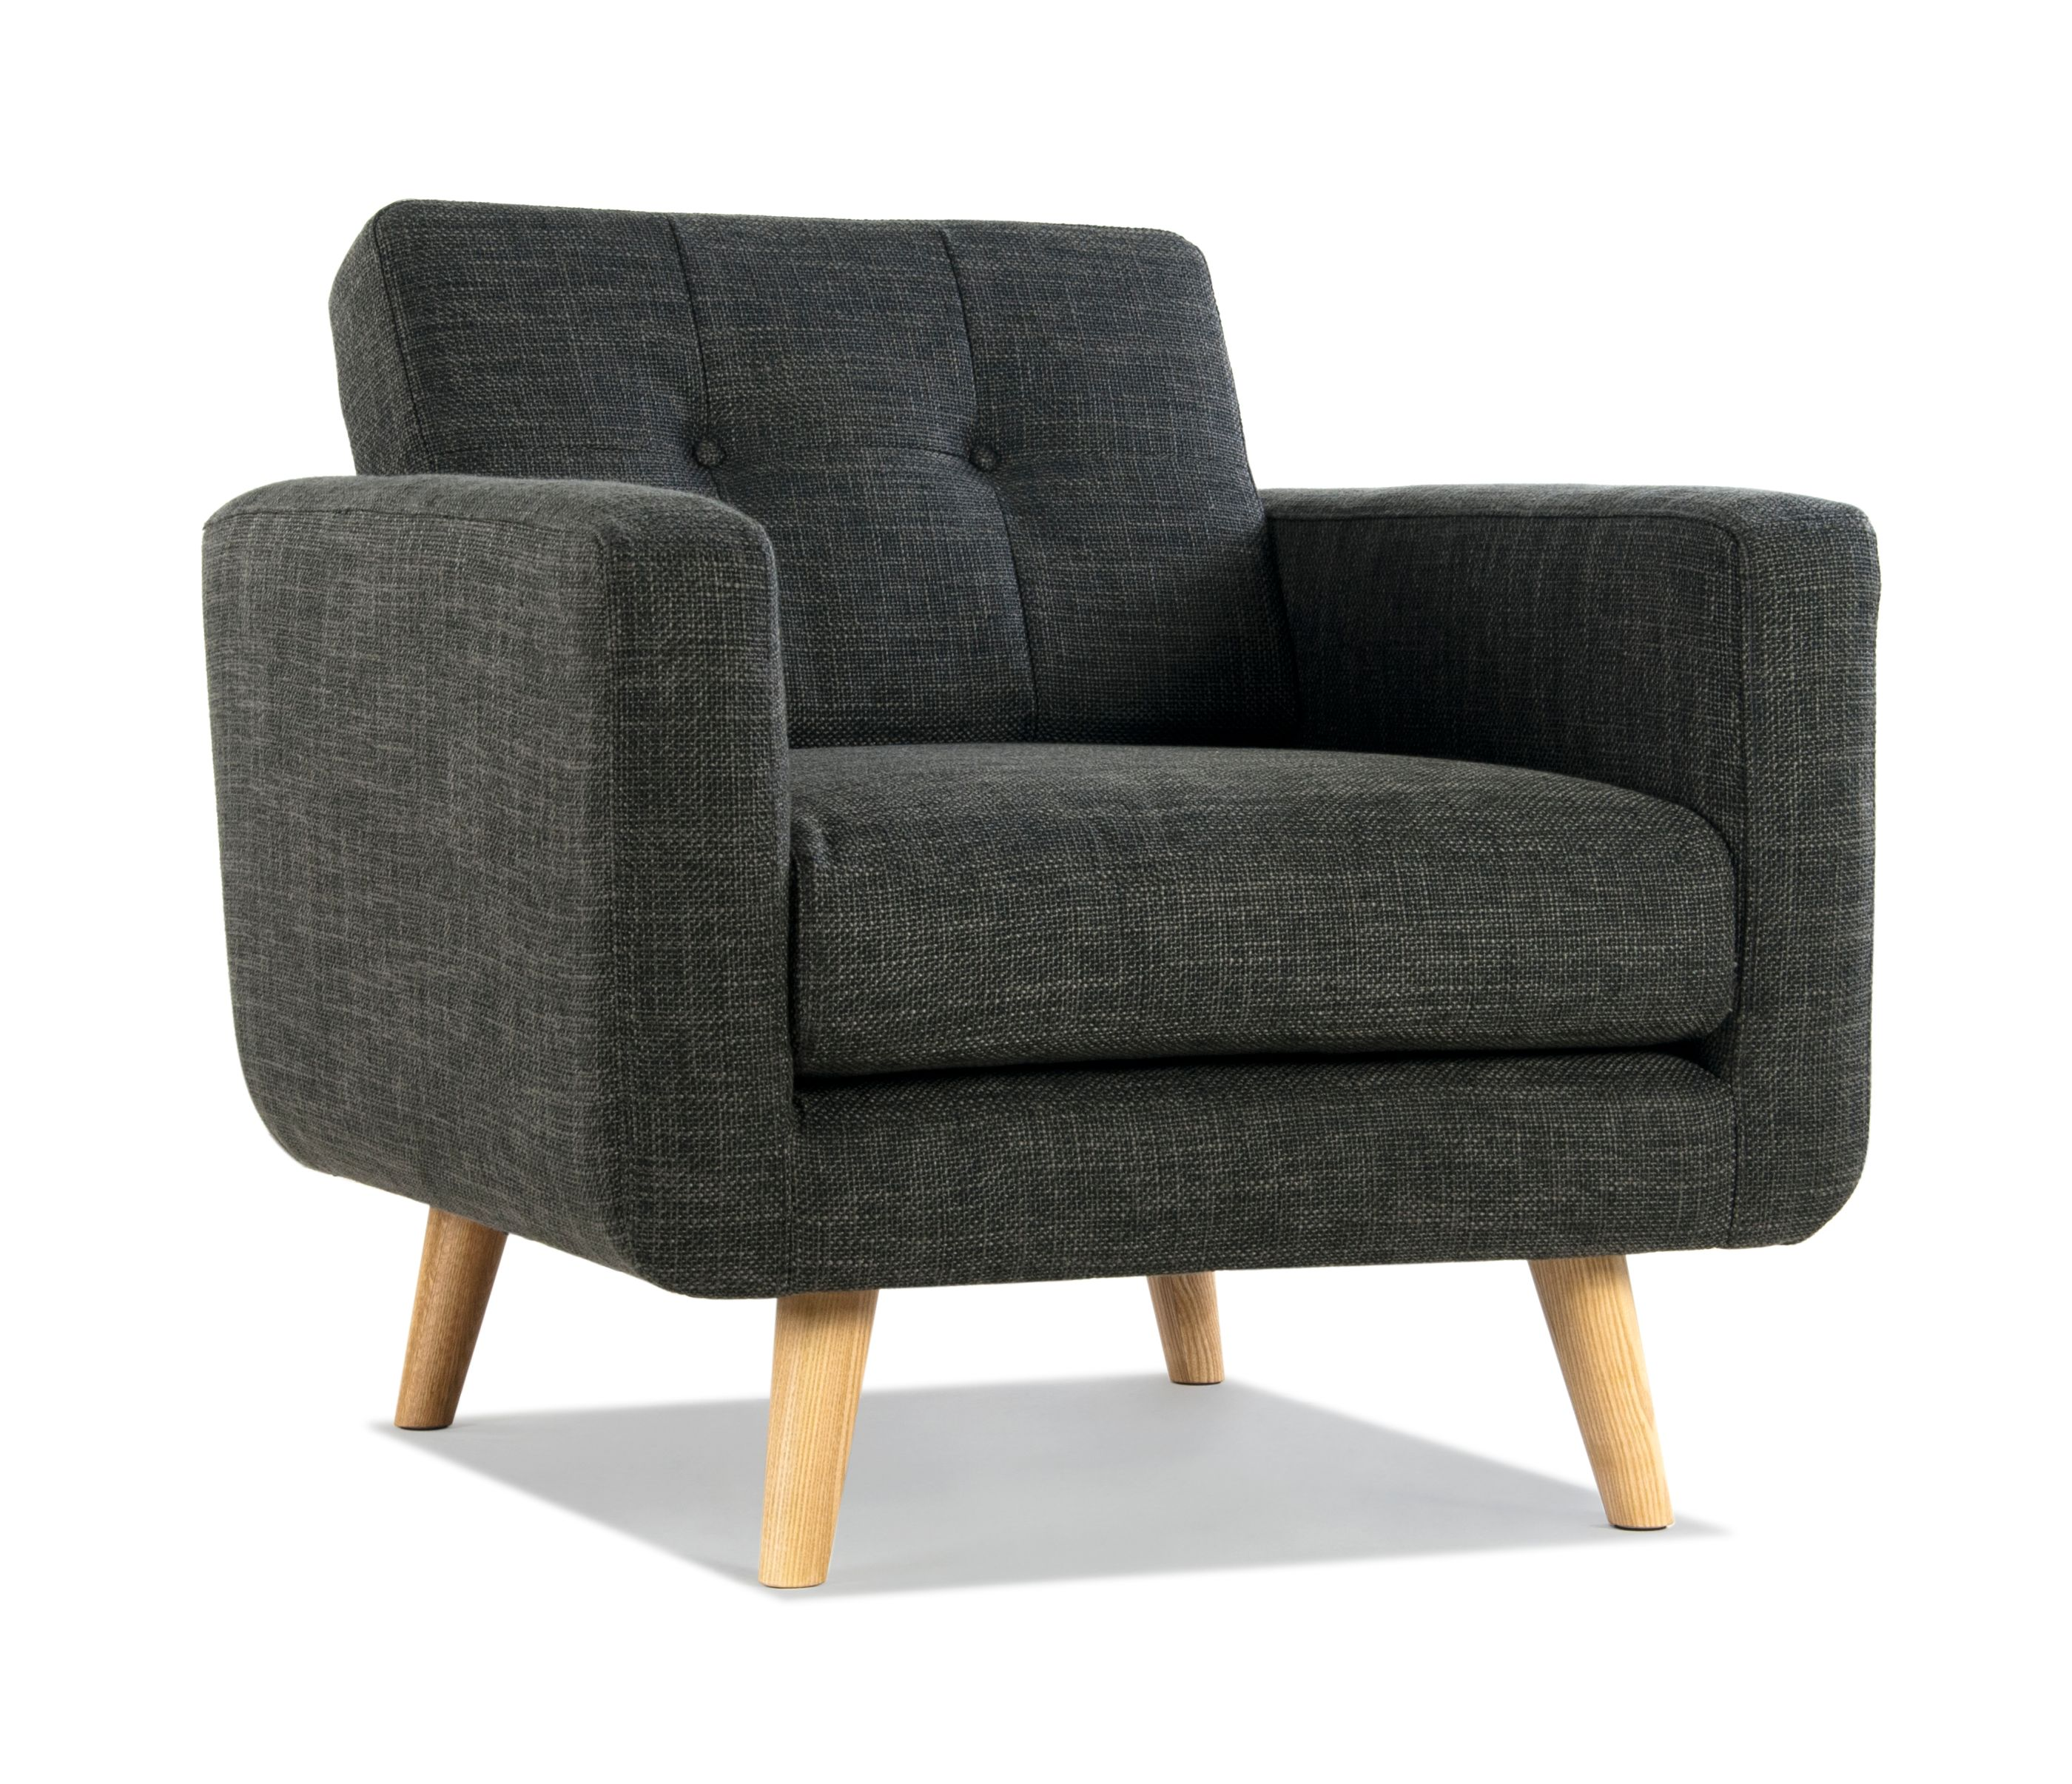 Lennox chair grey